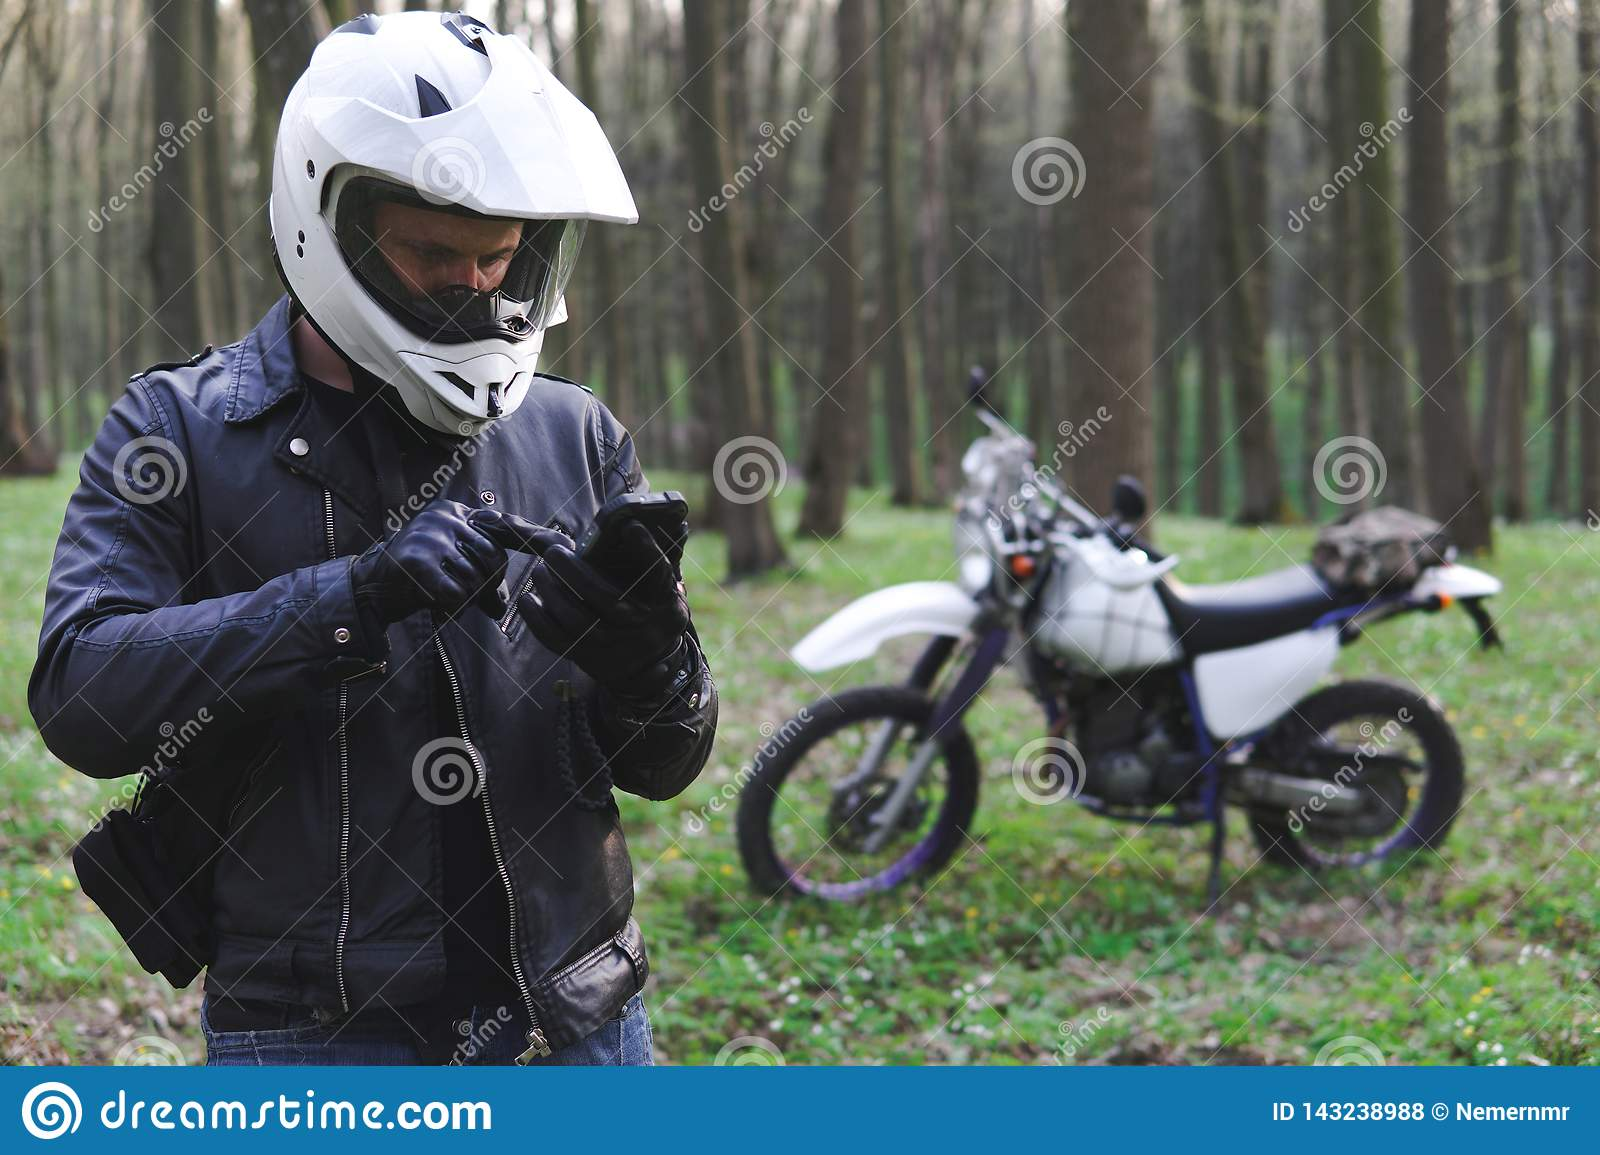 Classic enduro motorcycle off road in spring forest, man in a stylish leather jacket uses a smartphone, Motorcyclist gear, A